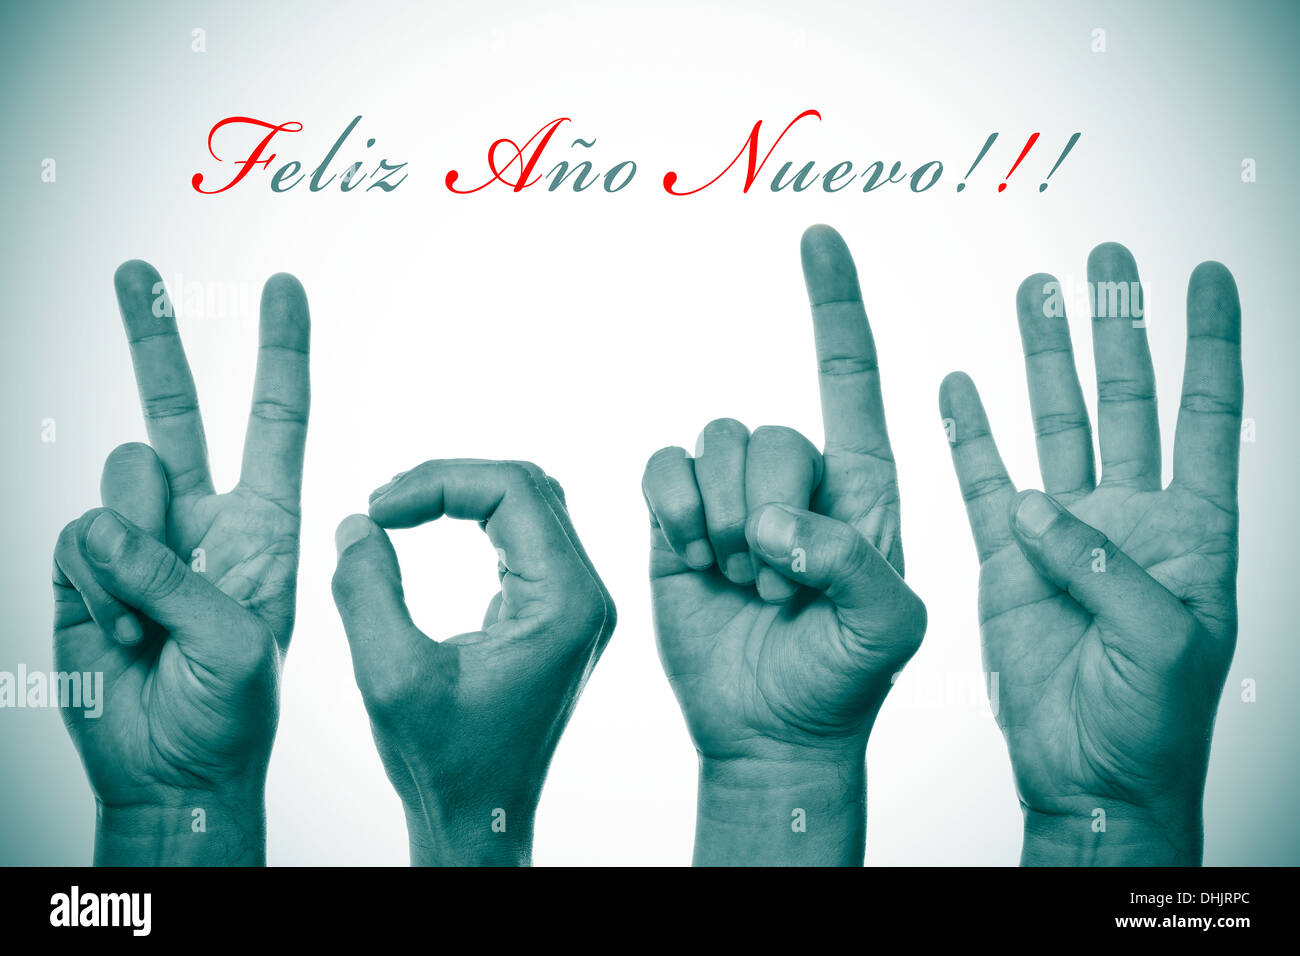 sentence feliz ano nuevo, happy new year written in spanish, and hands forming number 2014 - Stock Image